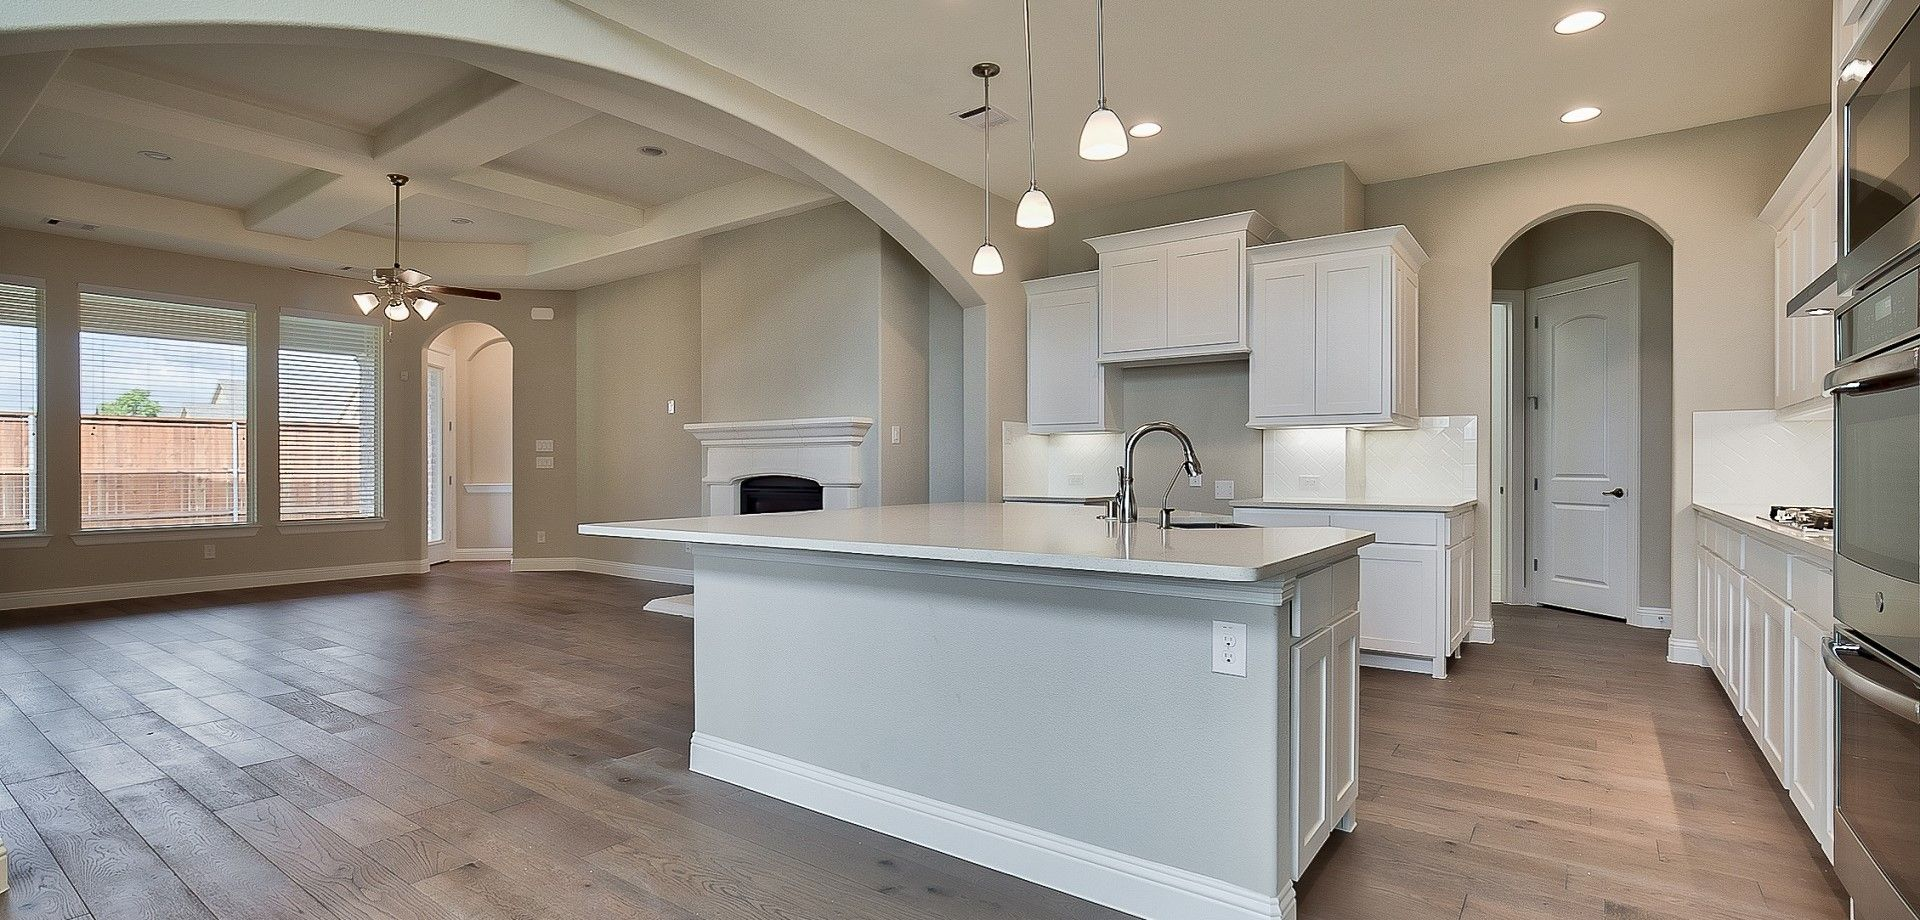 Kitchen featured in the Pershing By Chesmar Homes Dallas in Dallas, TX